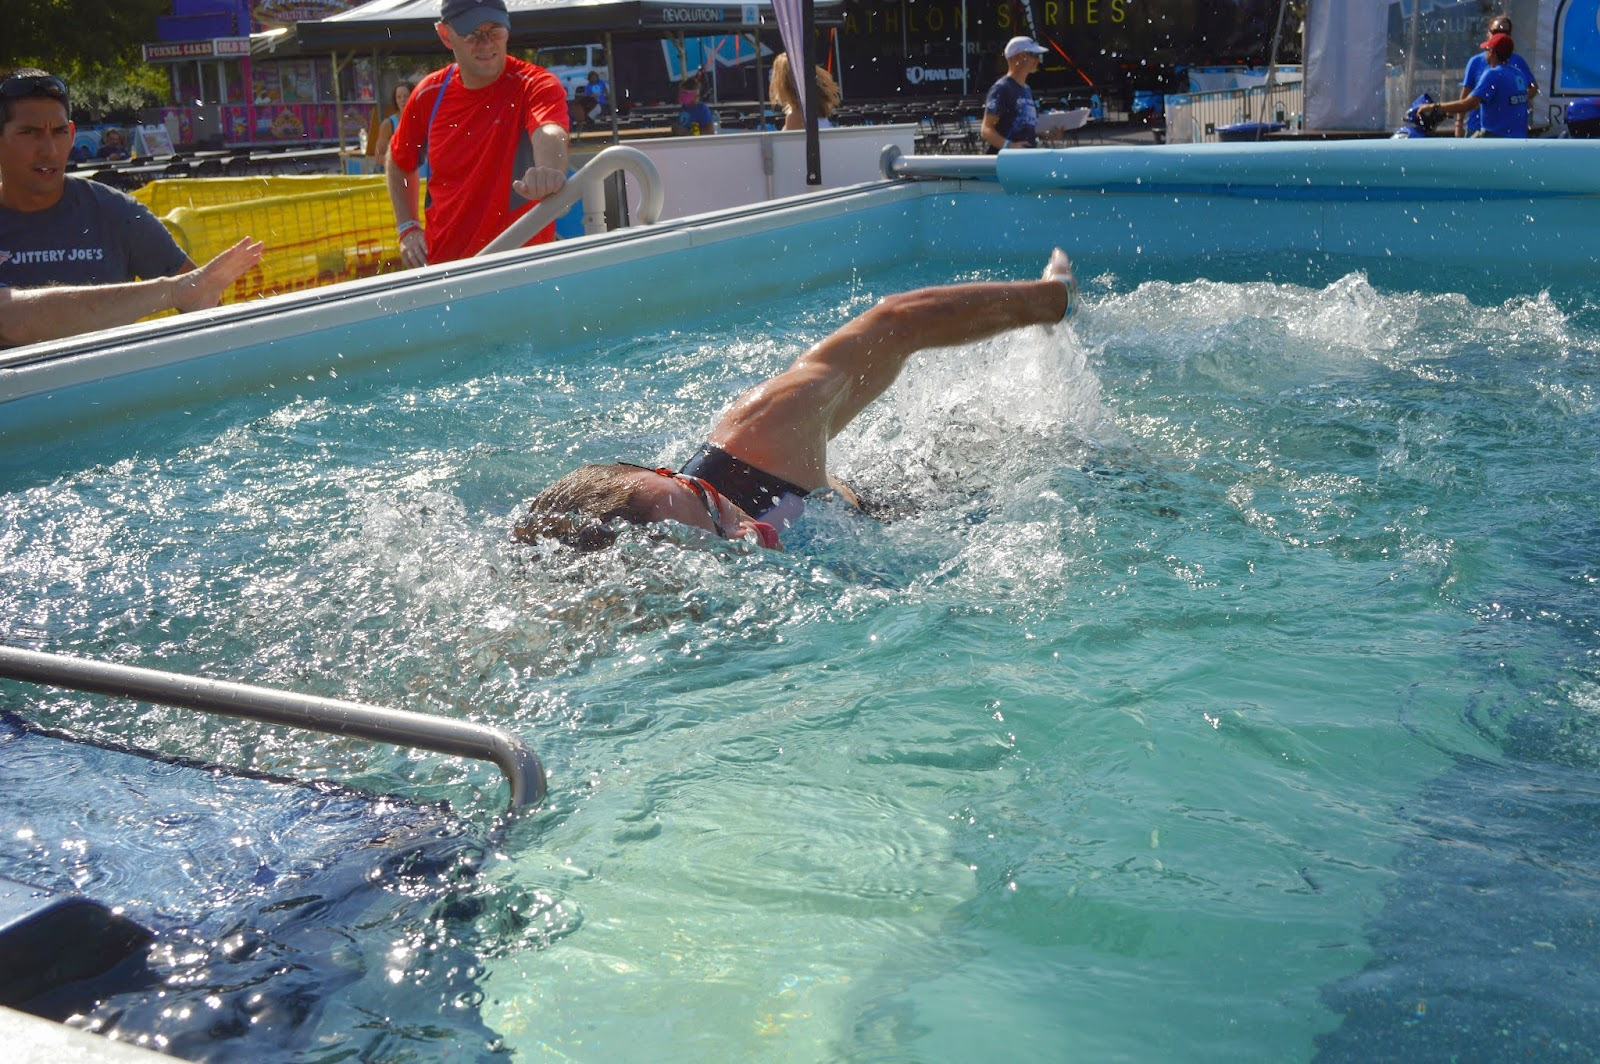 A test-swimmer in the Endless Pool at the REV3 triathlon in Anderson, SC, on October 11, 2014.